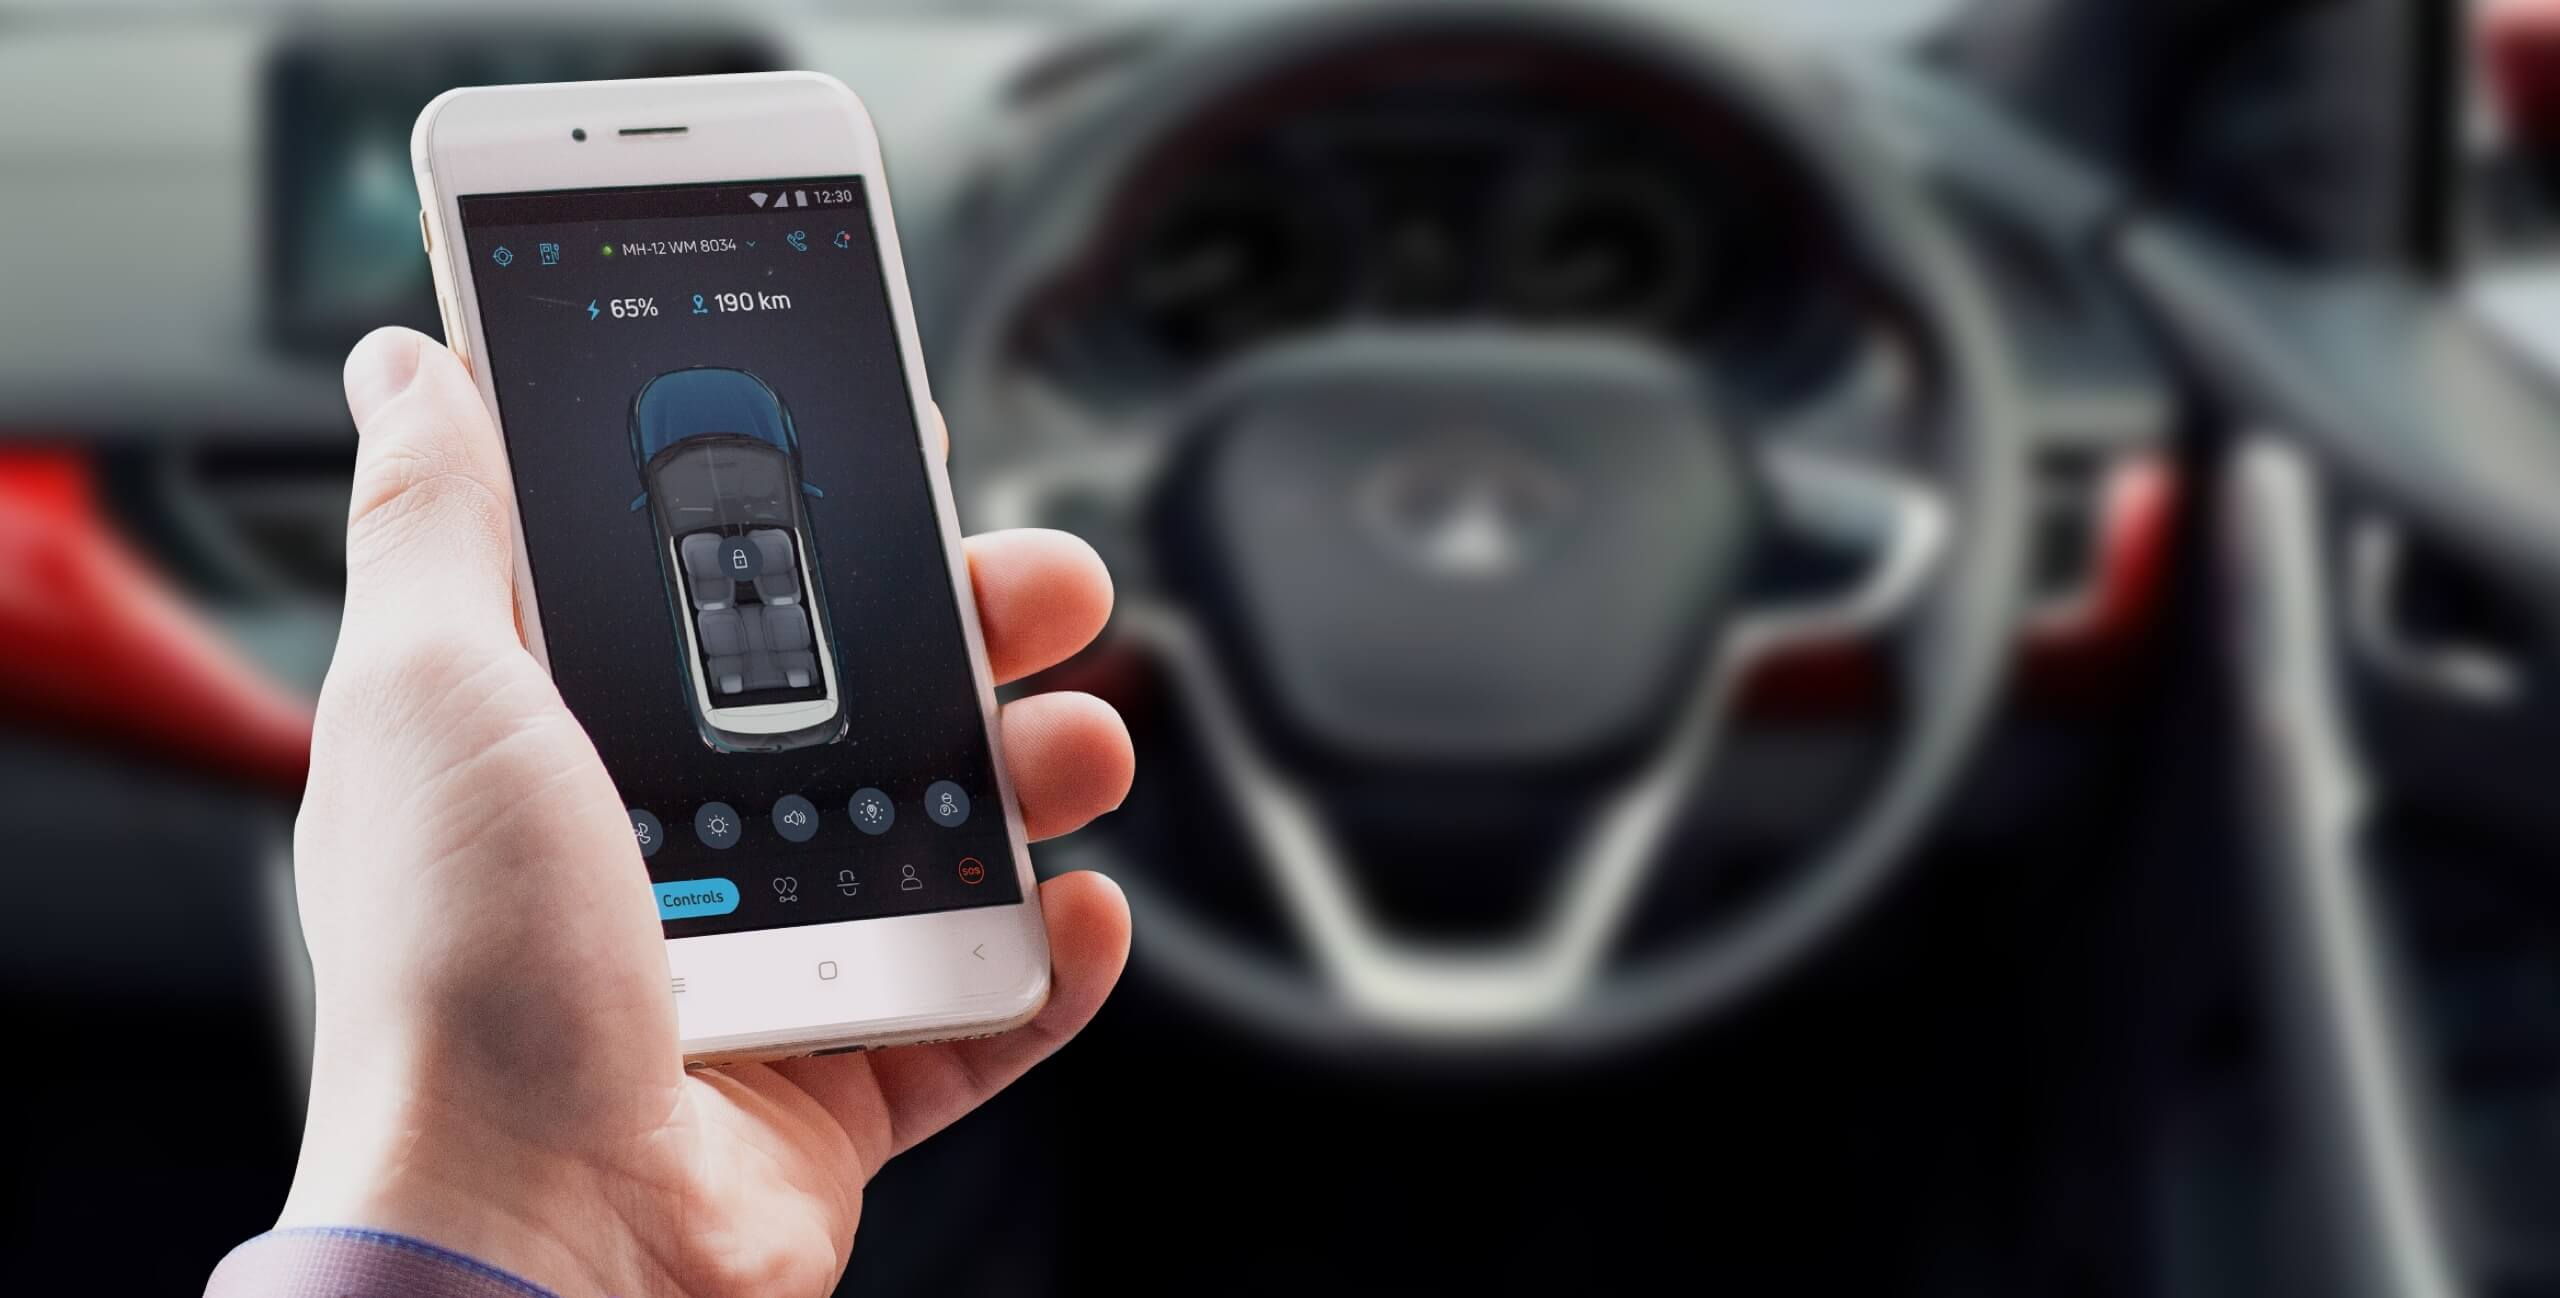 Smart application for cars experience the best ui ux design & development services